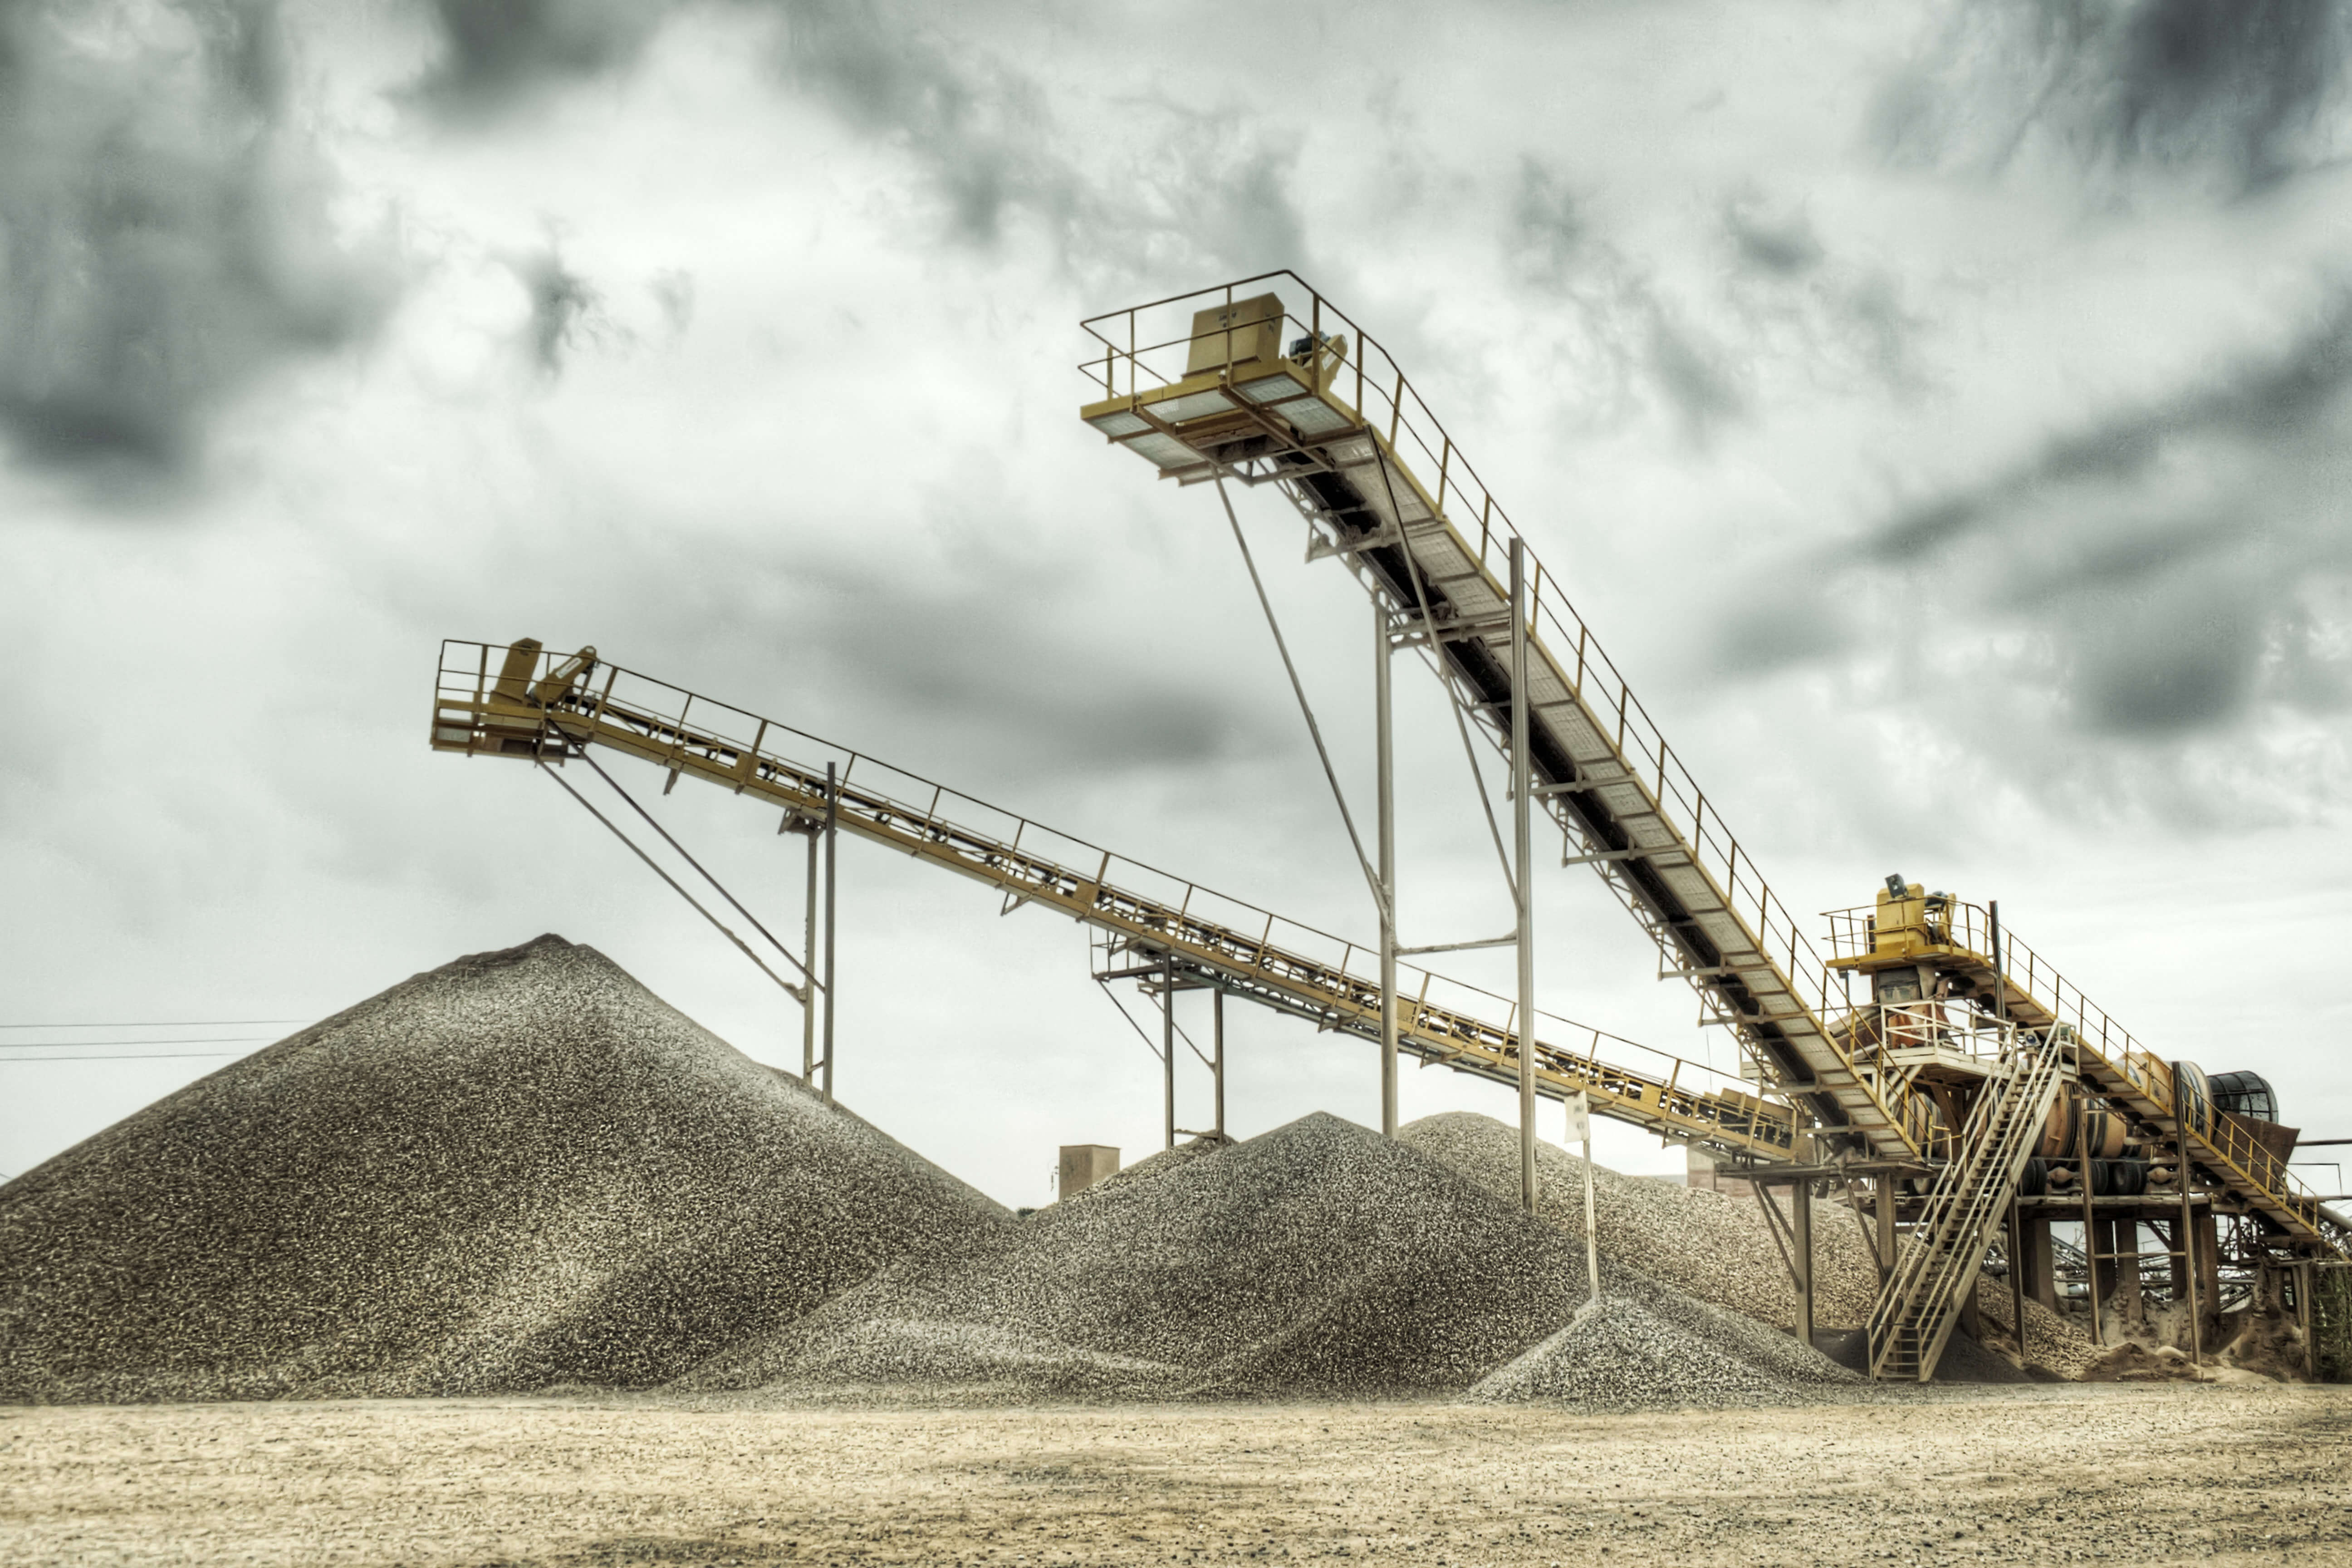 Martin Engineering targets quarries and manufacturing plants to grow sales.